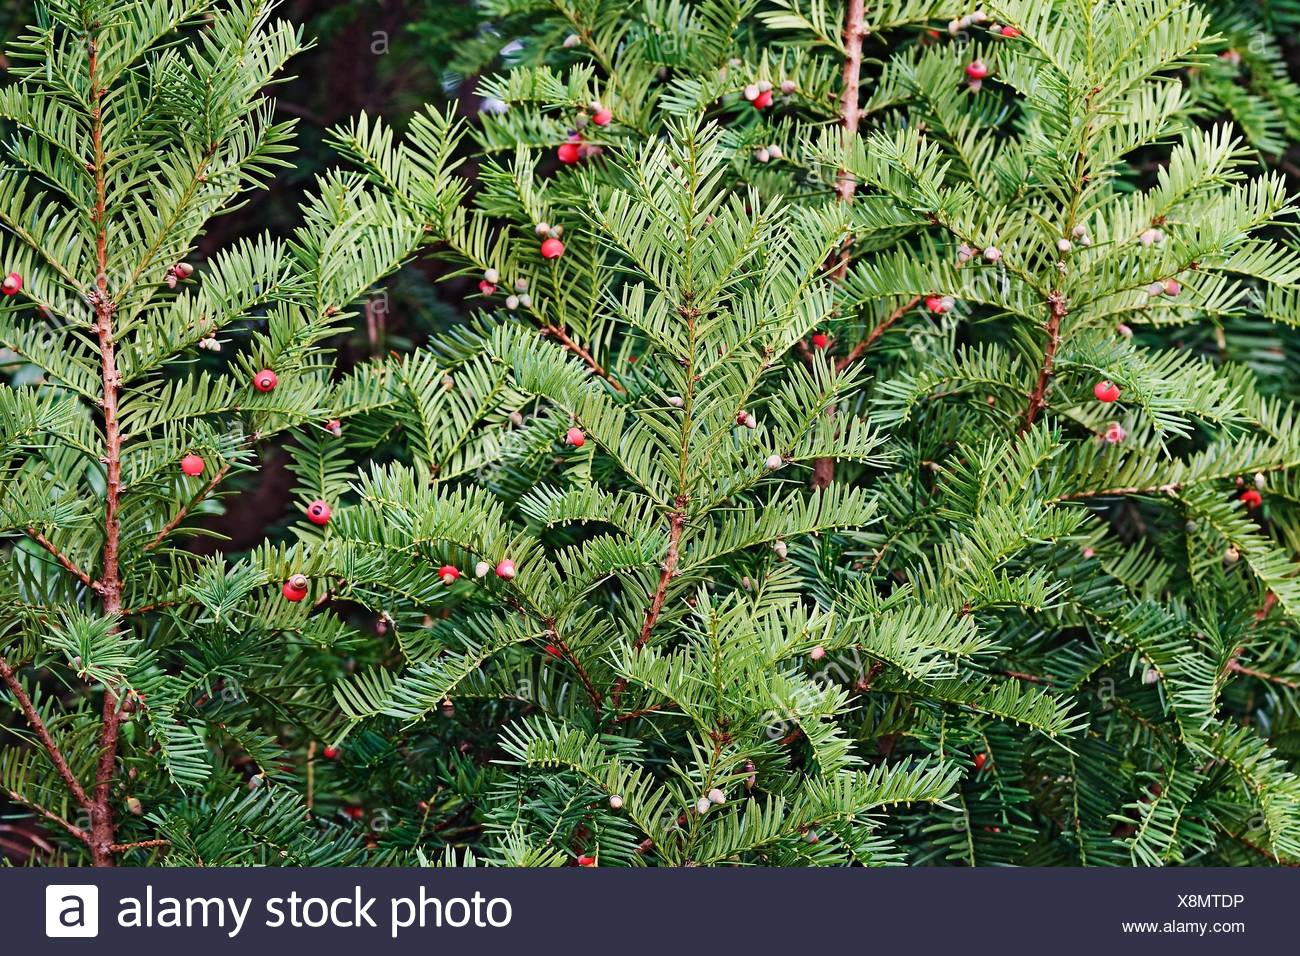 English jew (Taxus baccata). Called European jew also. Virginia, United States. - Stock Image